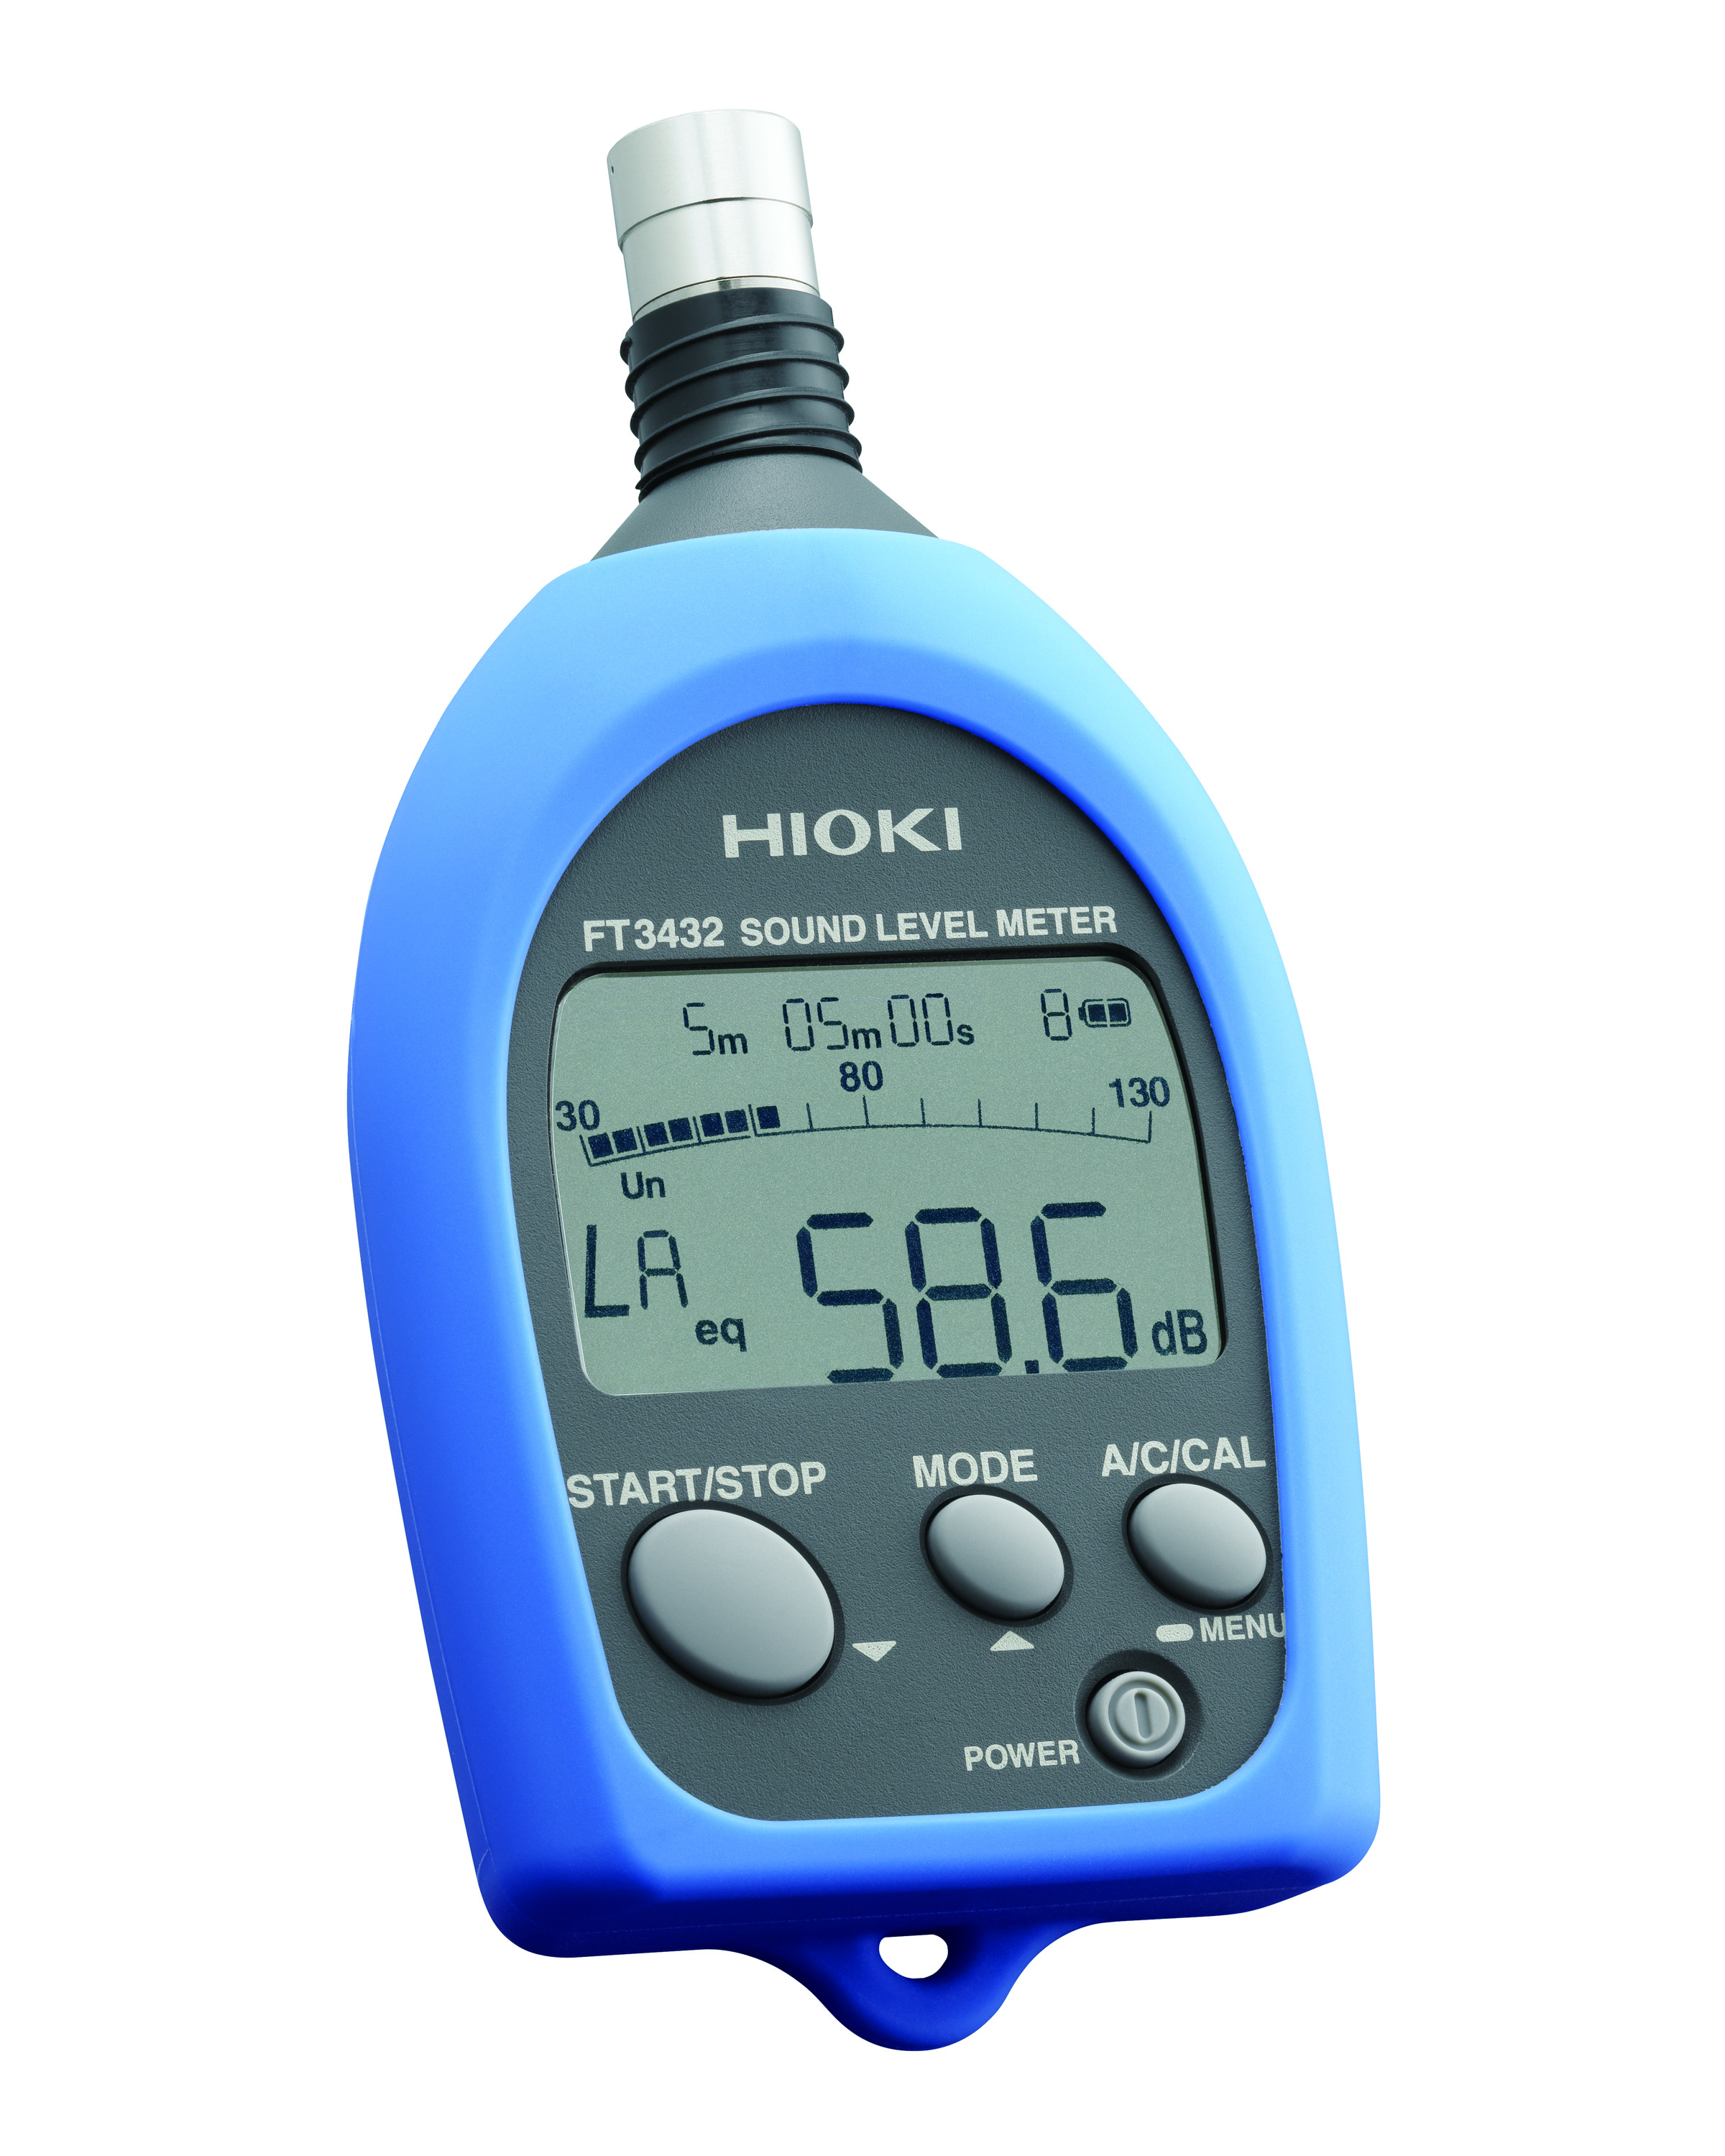 FT3432 Sound Level Meter